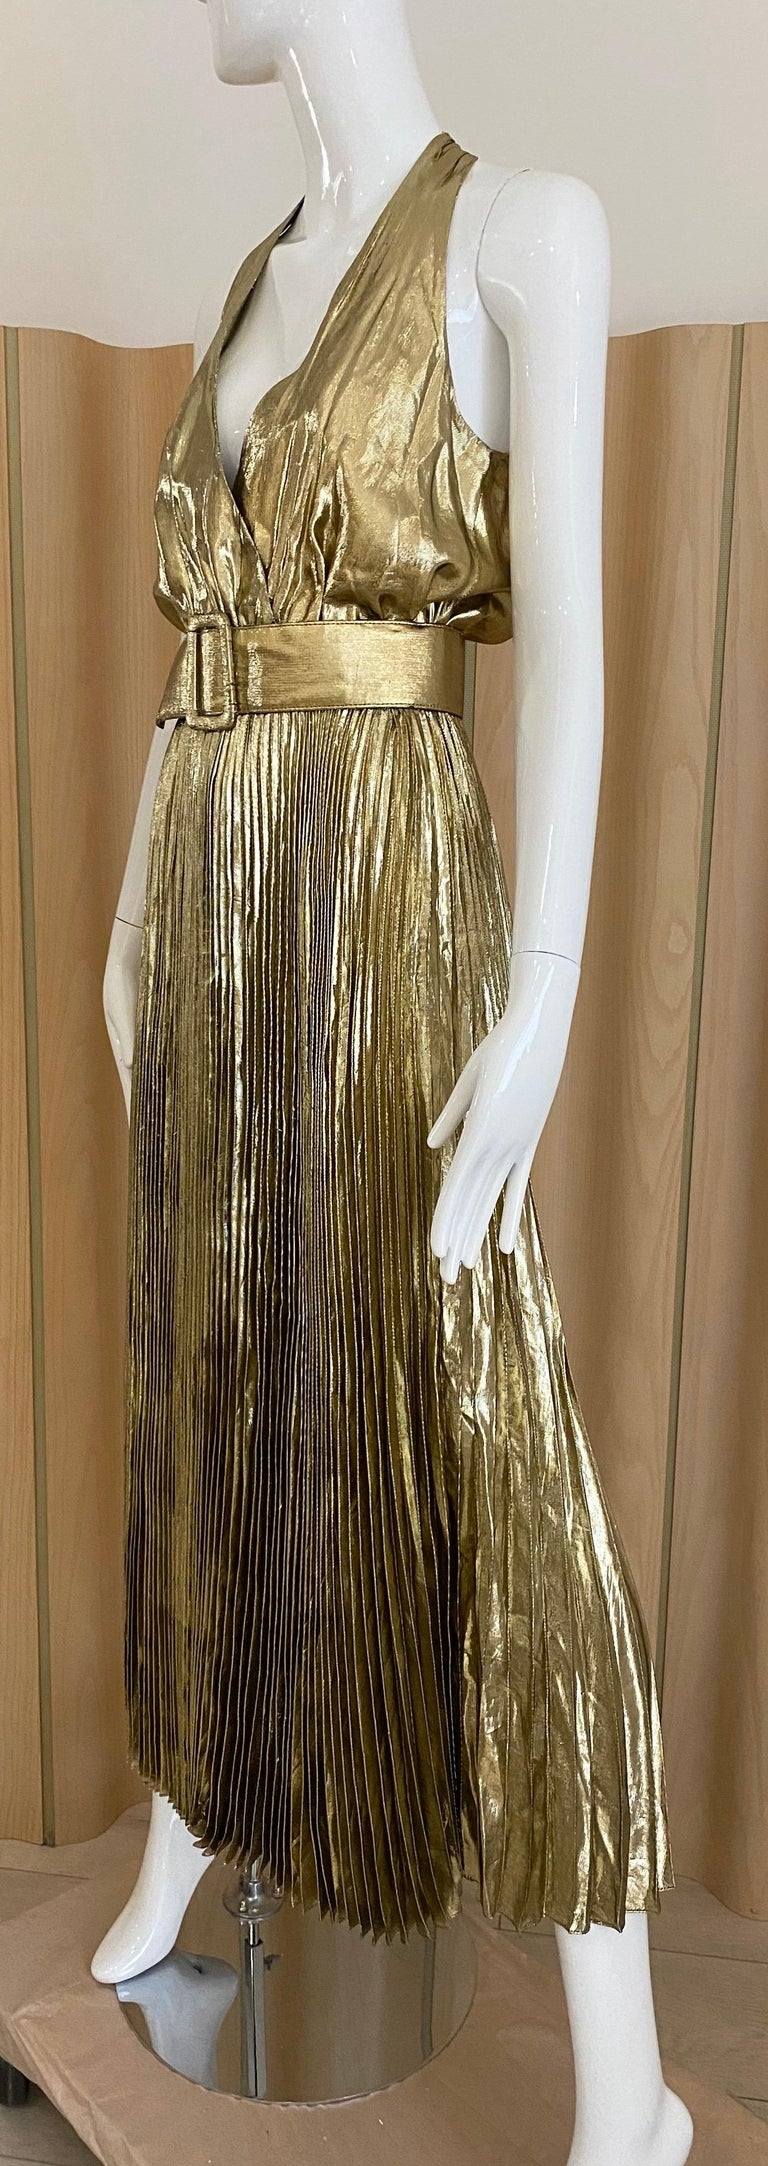 1970s Gold Lamé Sleeveless Pleated cocktail Dress For Sale 4